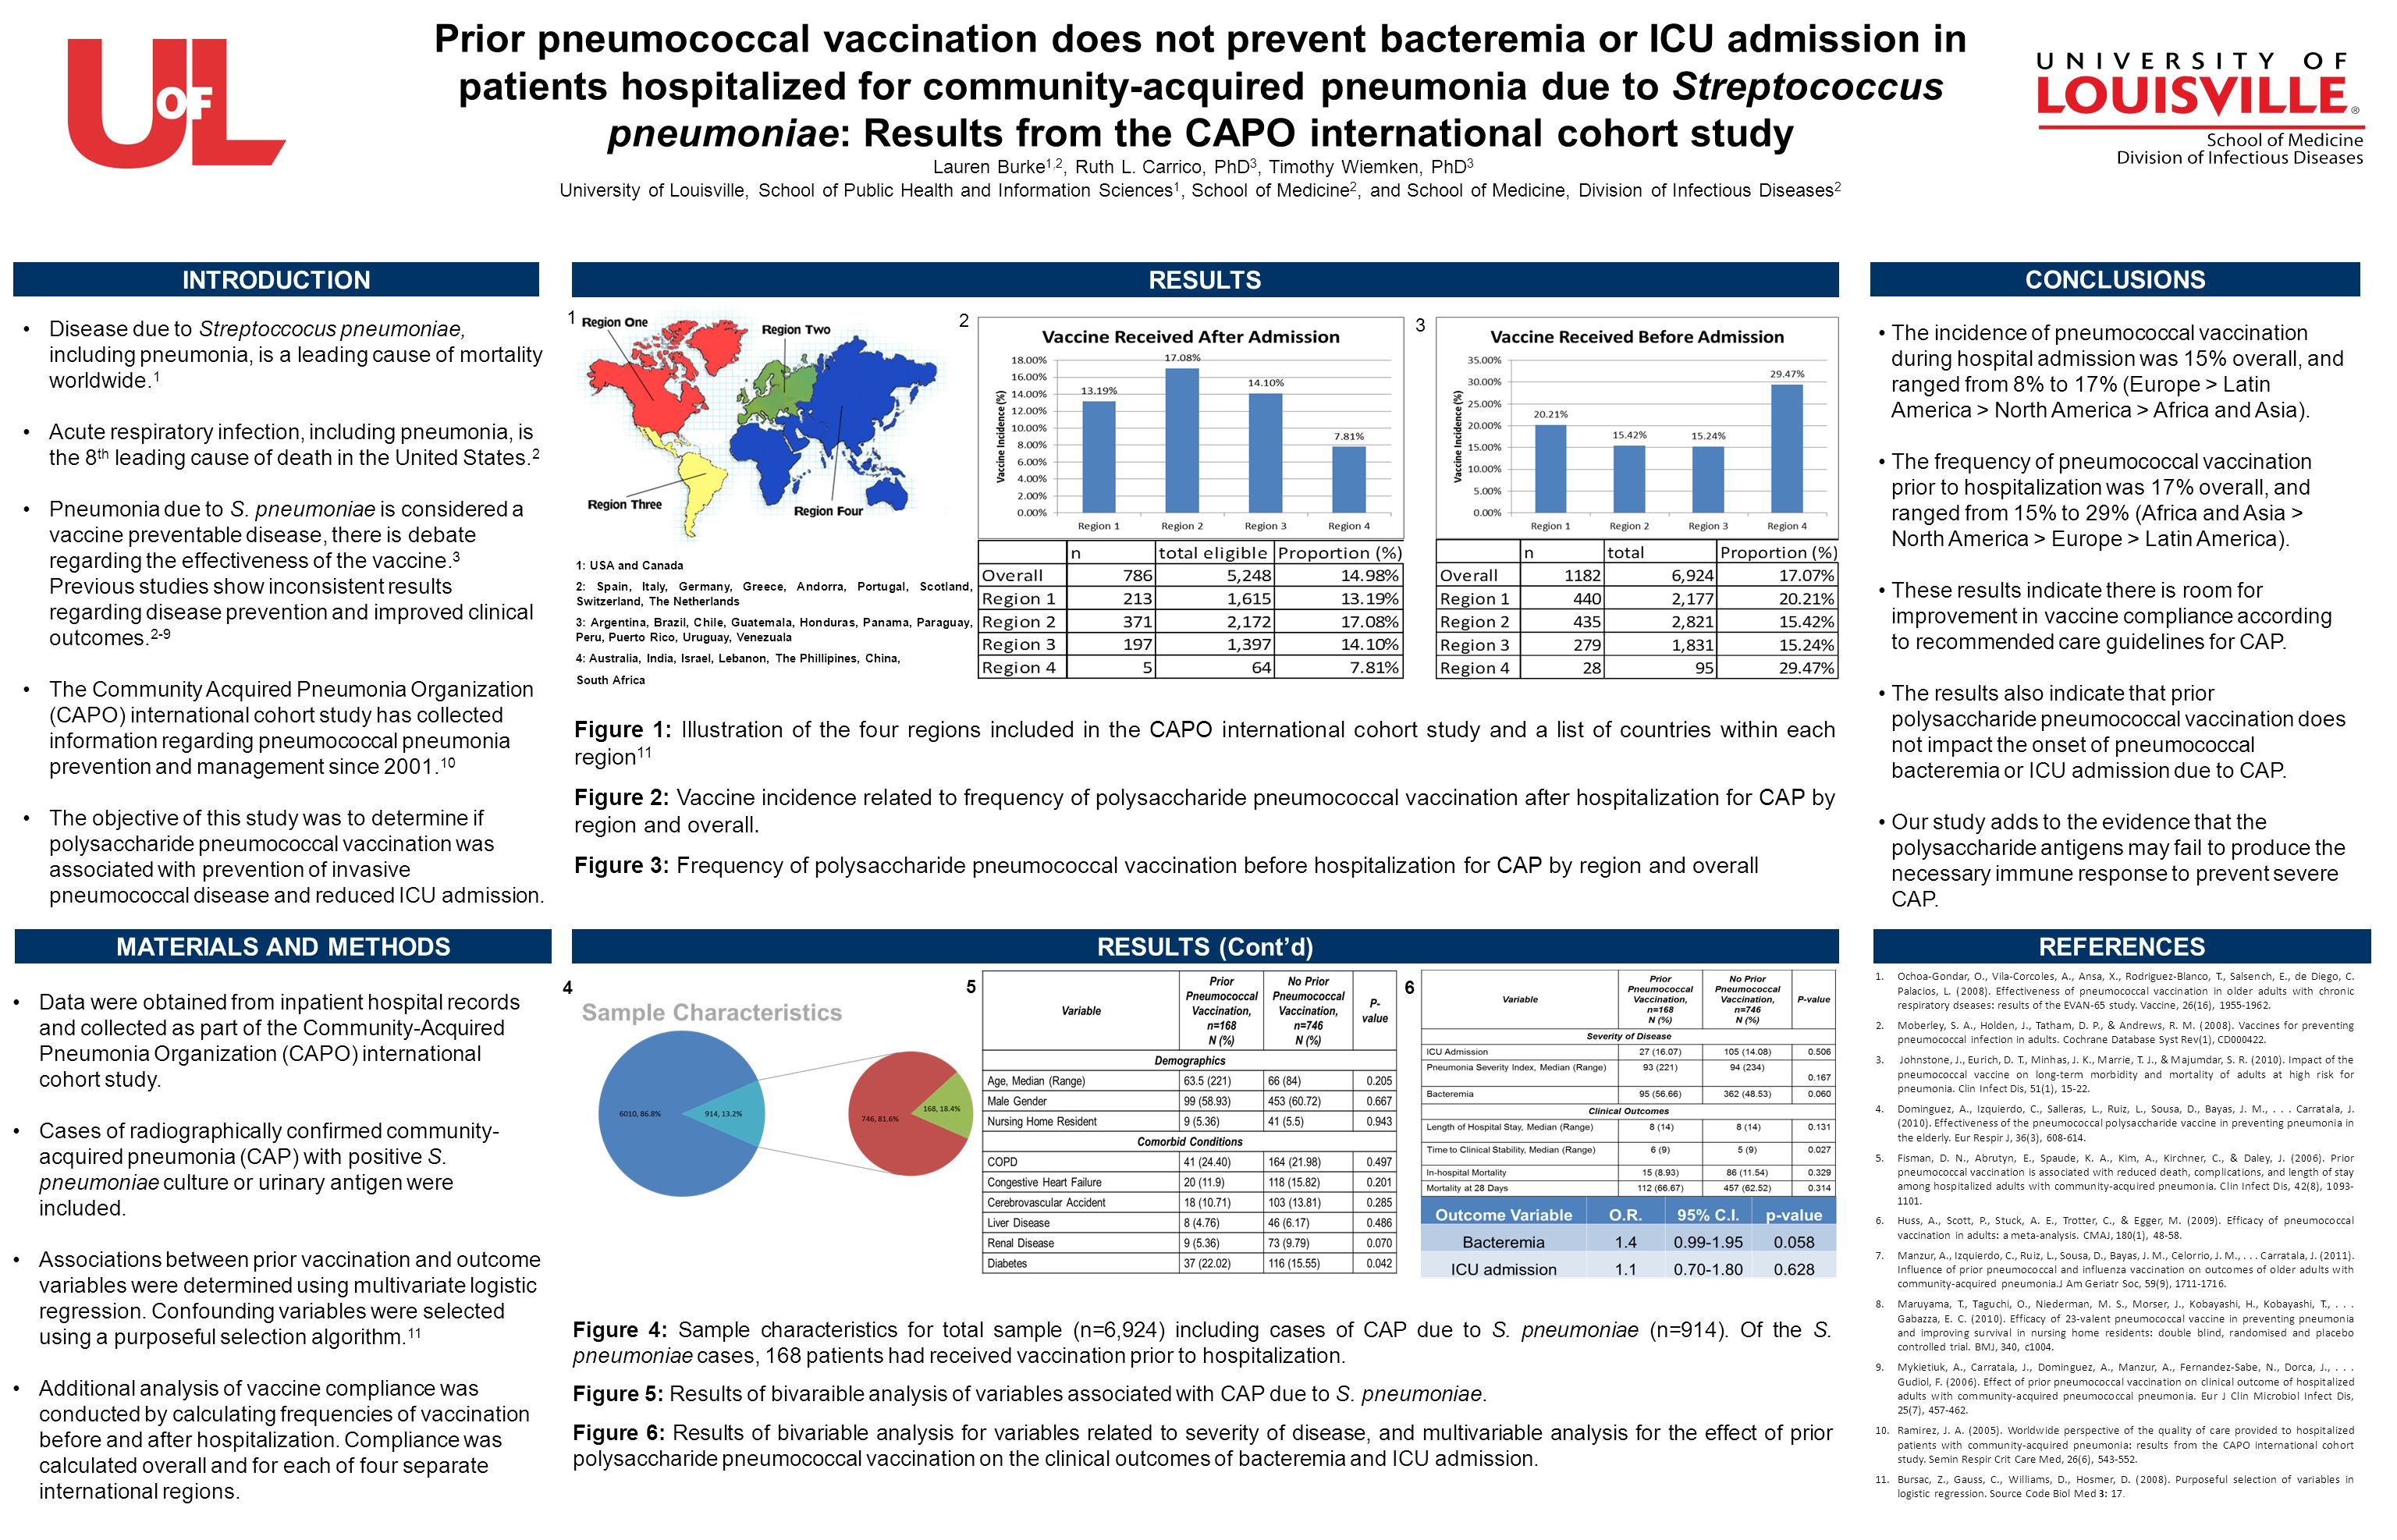 Prior pneumococcal vaccination does not prevent bacteremia or ICU admission in patients hospitalized for community-acquired pneumonia due to Streptococcus pneumoniae: Results from the CAPO international cohort study Lauren Burke 1,2, Ruth L.